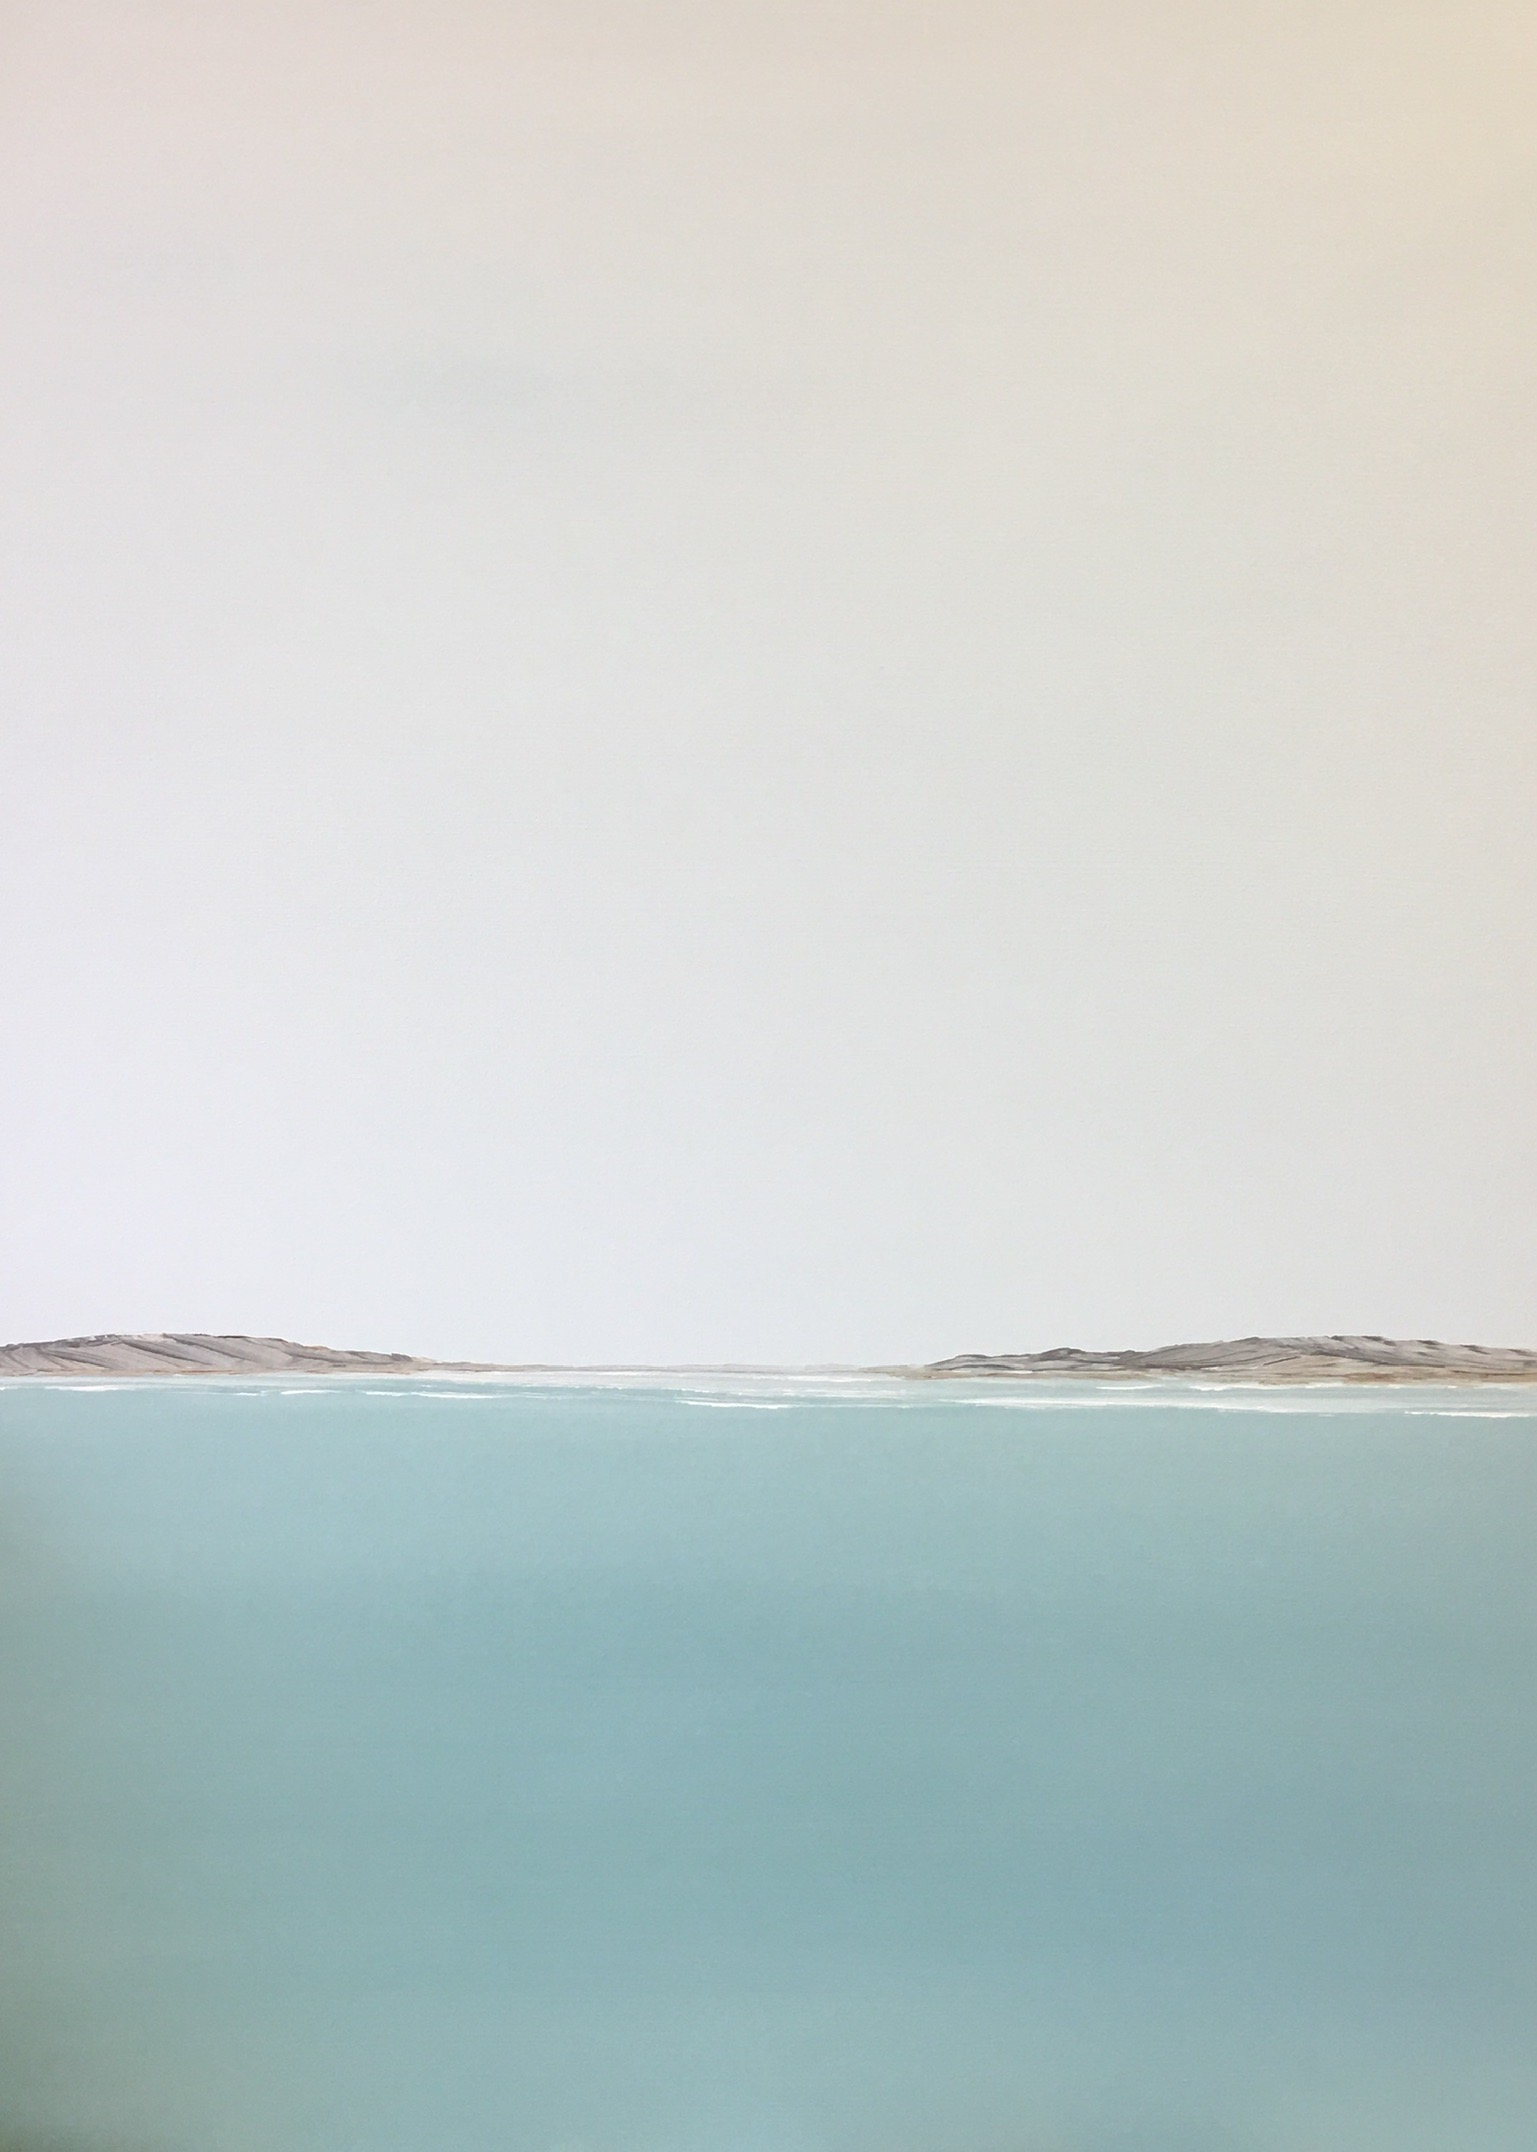 Serene Seascapes by Becky O'Toole and a conversation on her creative process #interview #creativity #coastal #seascapes